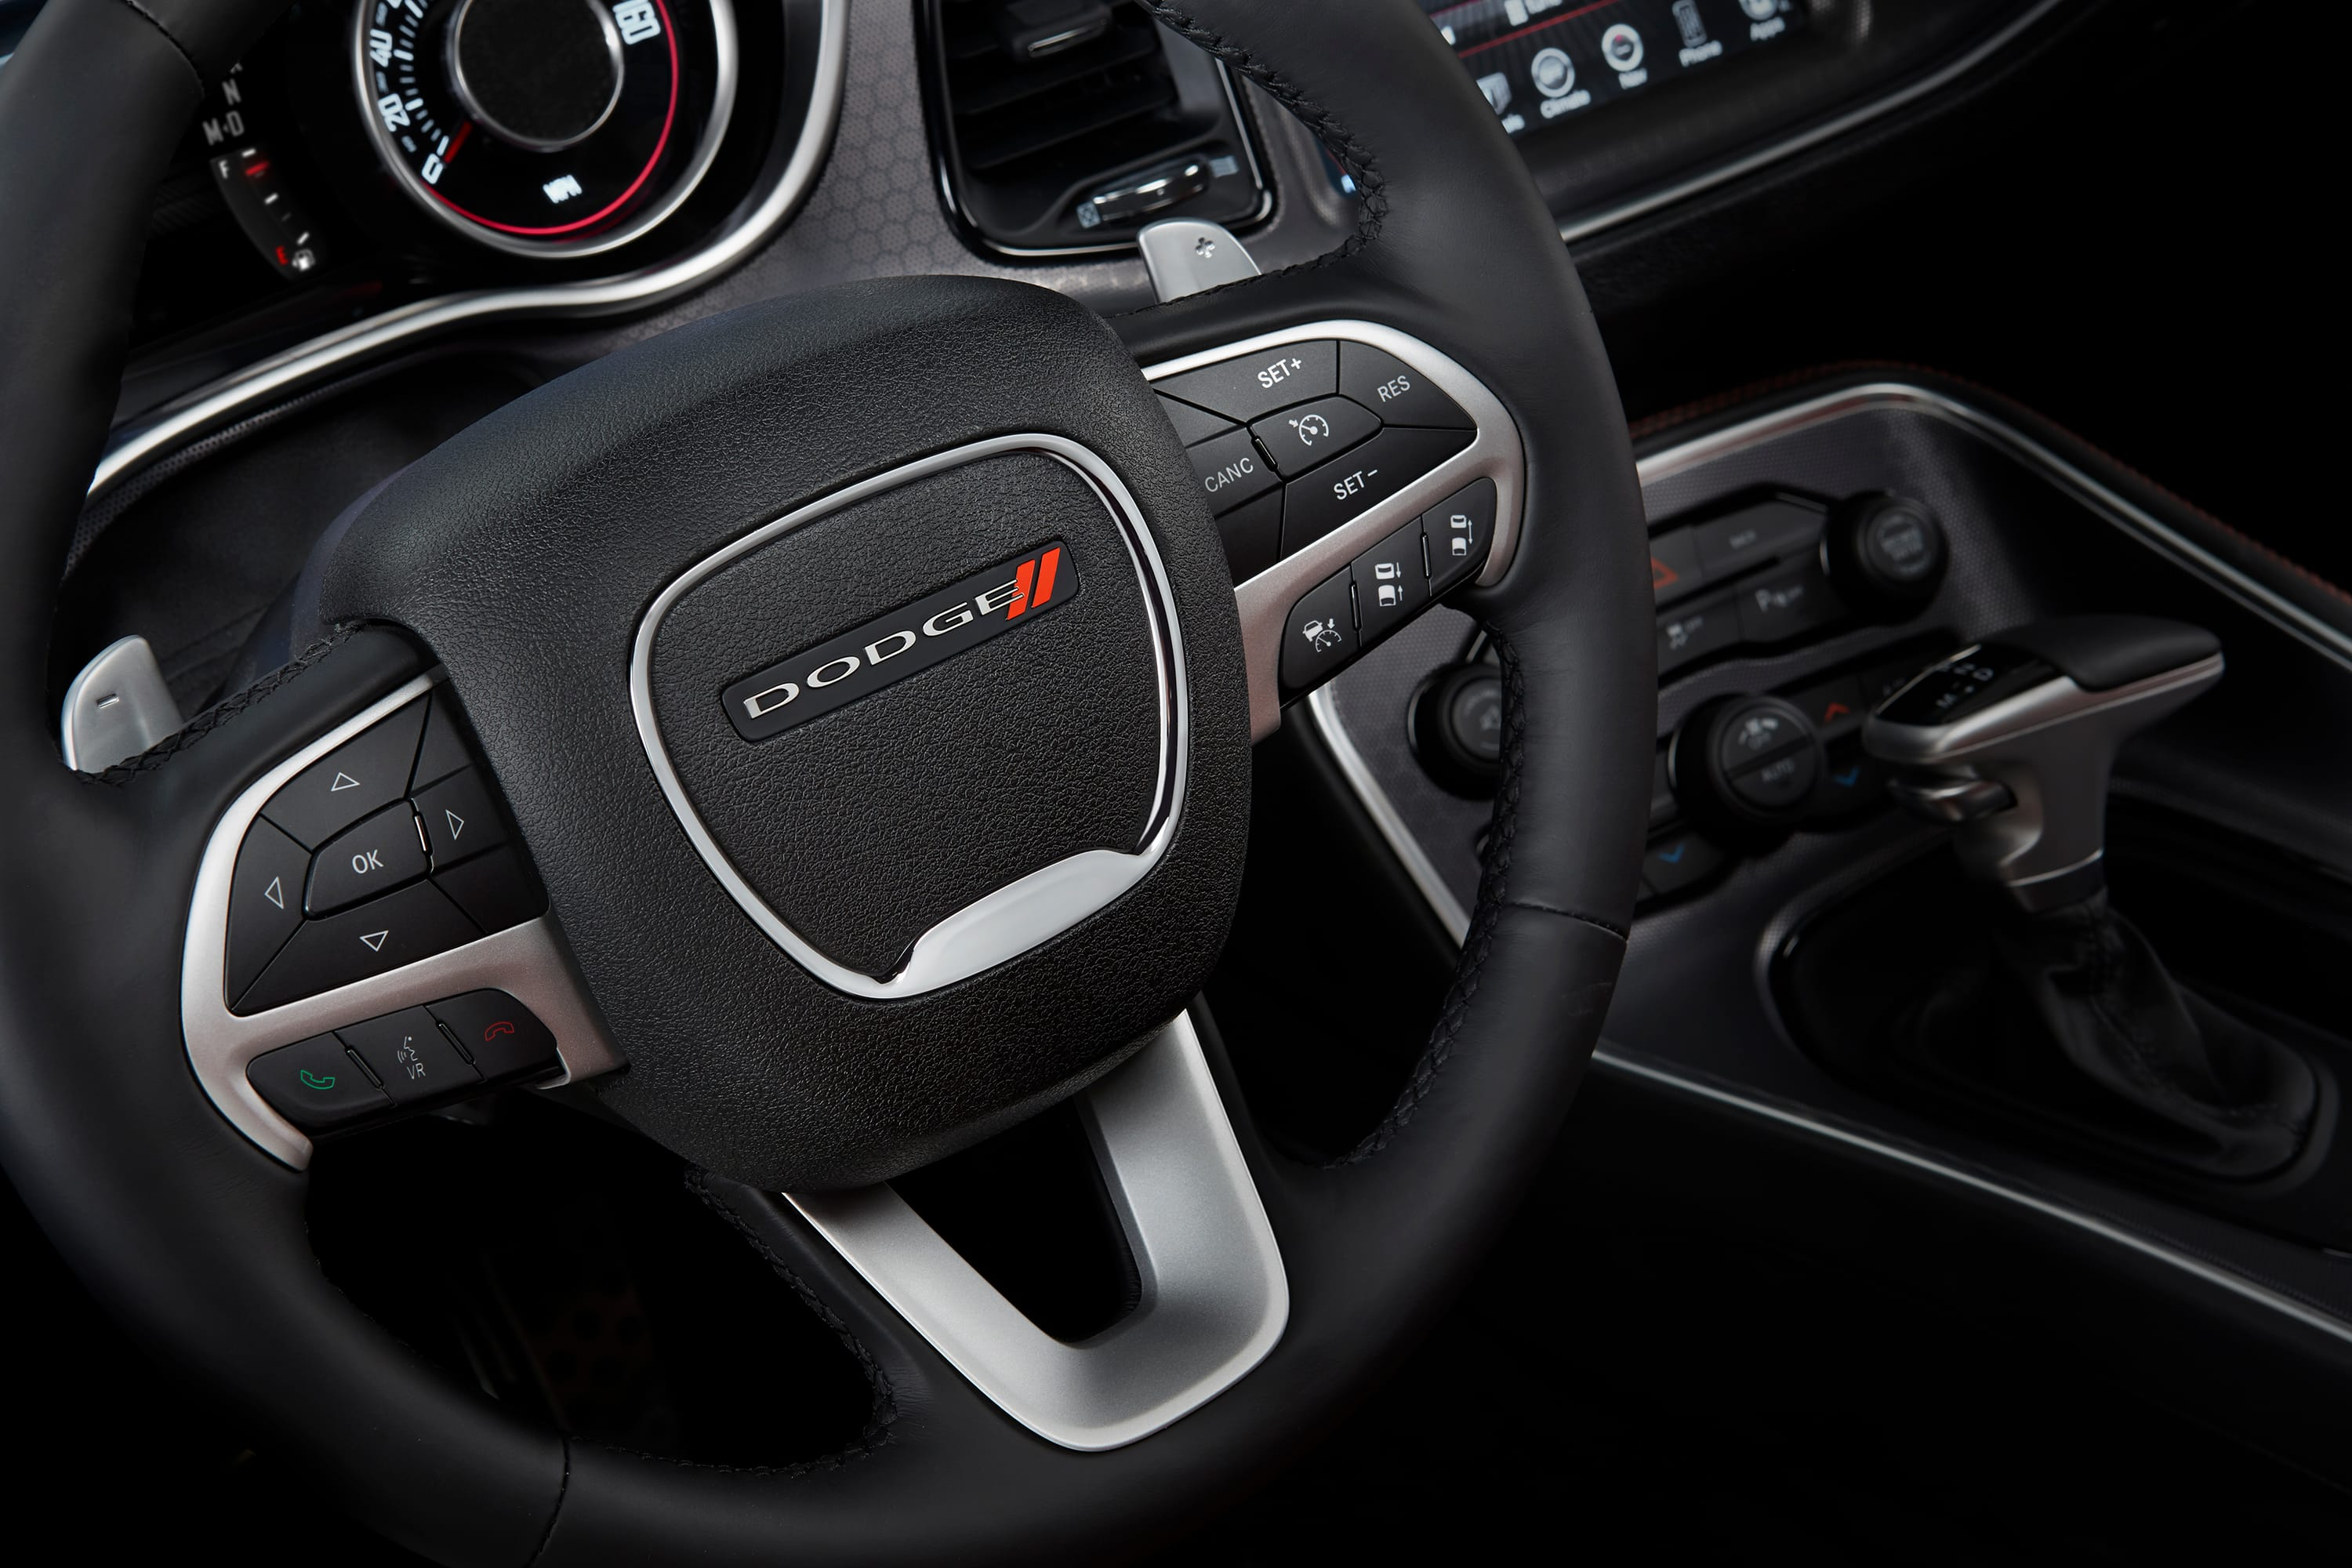 2016 Dodge Challenger SXT Plus Steering Wheel